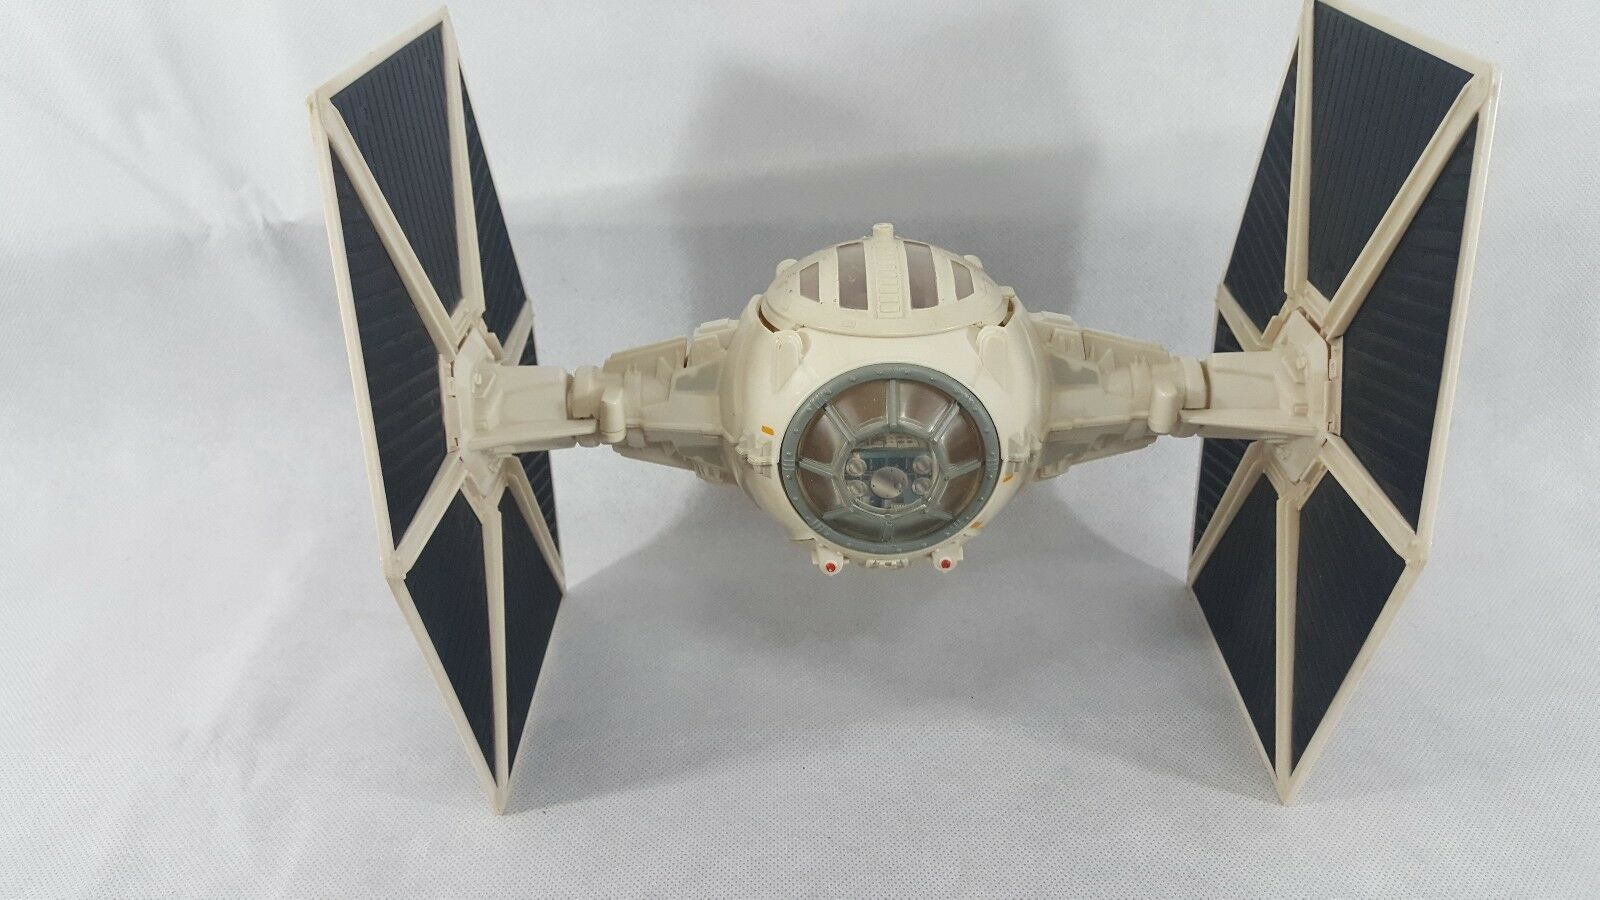 2005 Big Wing TIE Fighter Star Wars Action Figure Imperial Weiß Collectible